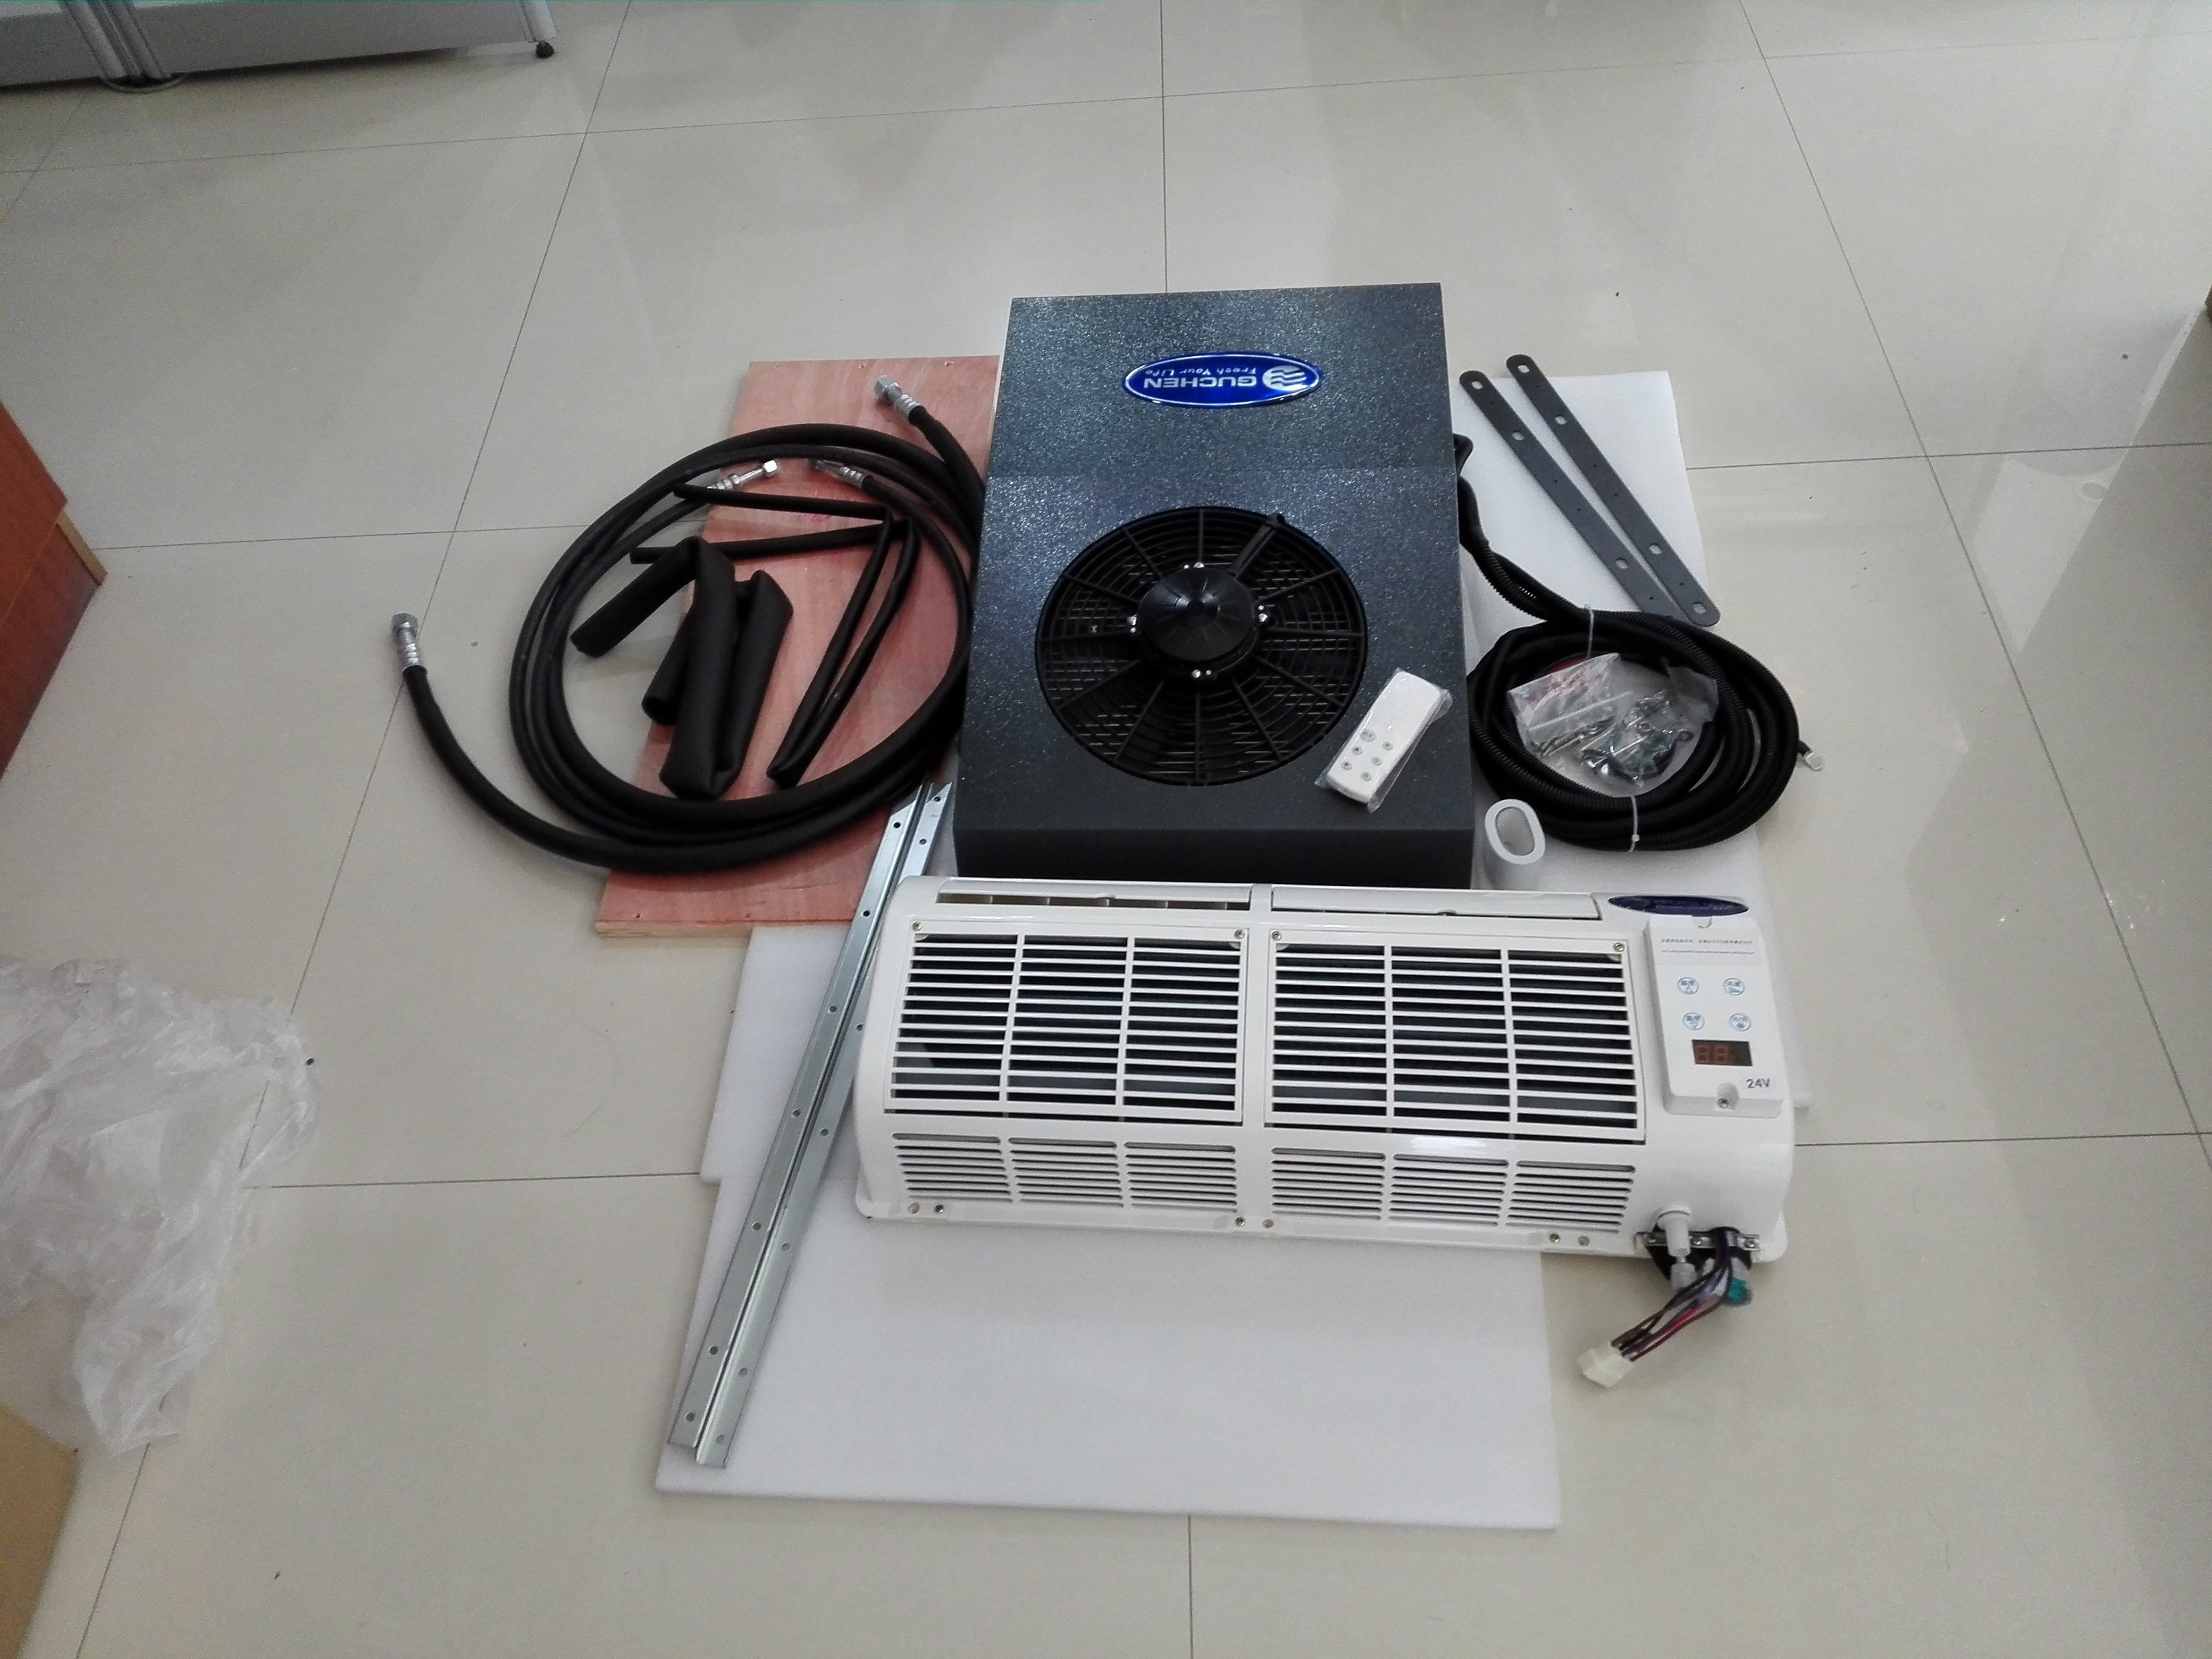 hight resolution of airpro300b van air conditioner uses low voltage protector for control panel and compressor to avoid discharging the battery below its required voltage